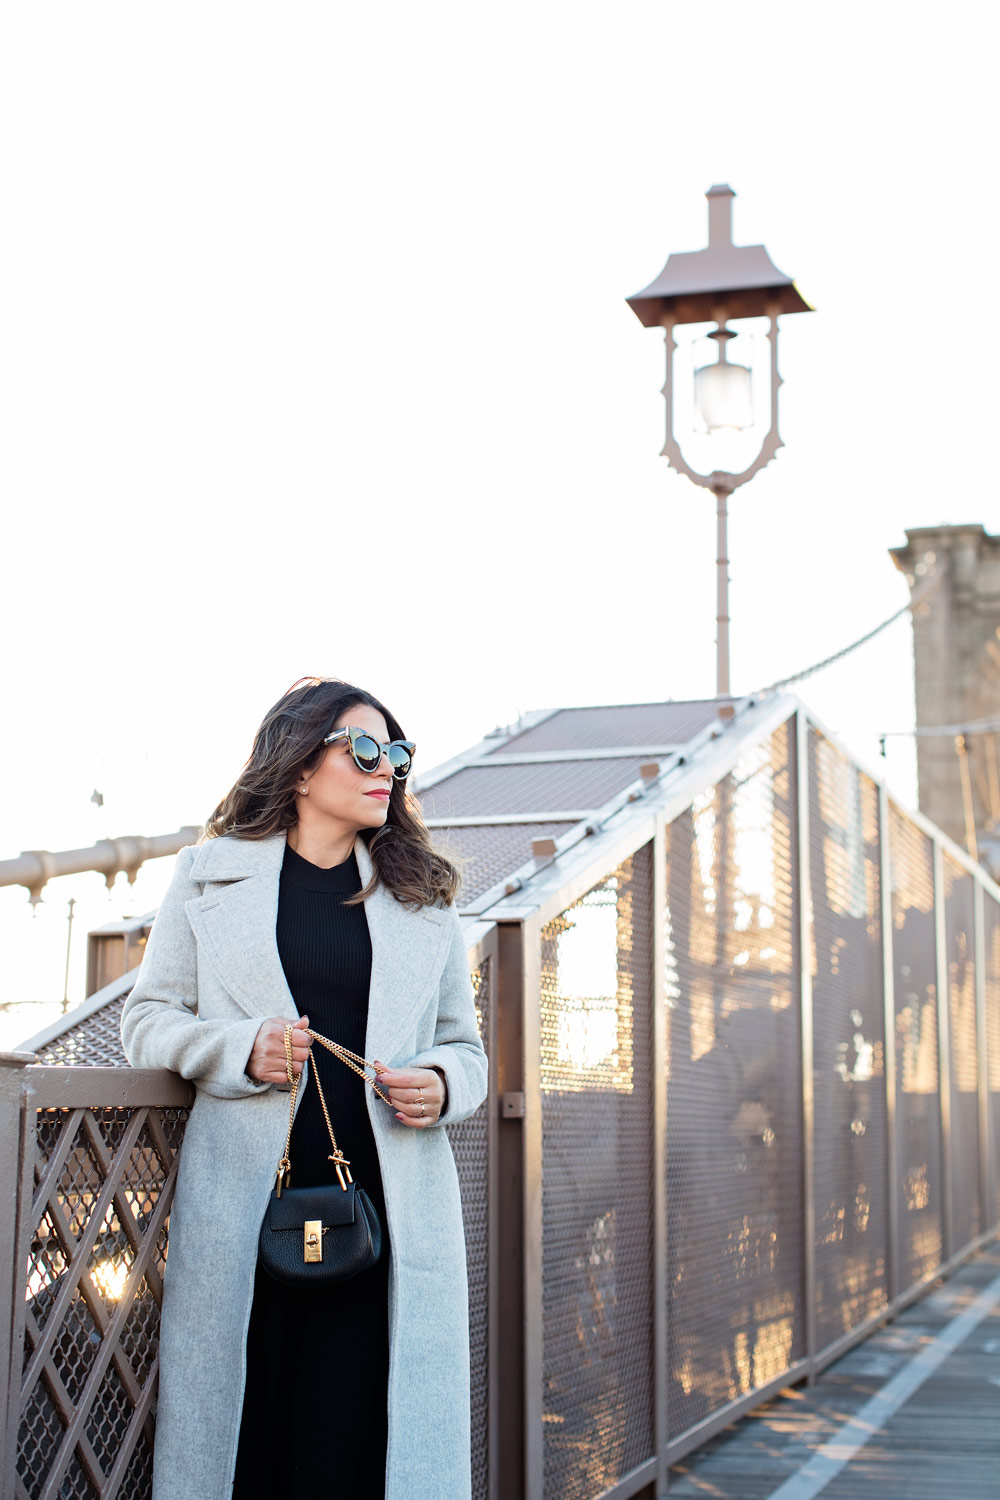 brooklyn-bridge-club-monaco-grey-wool-coat-black-dress-chloe-drew-bag-schutz-shoes-booties-new-york-city-corporate-catwalk-nyc-fashion-blogger-10